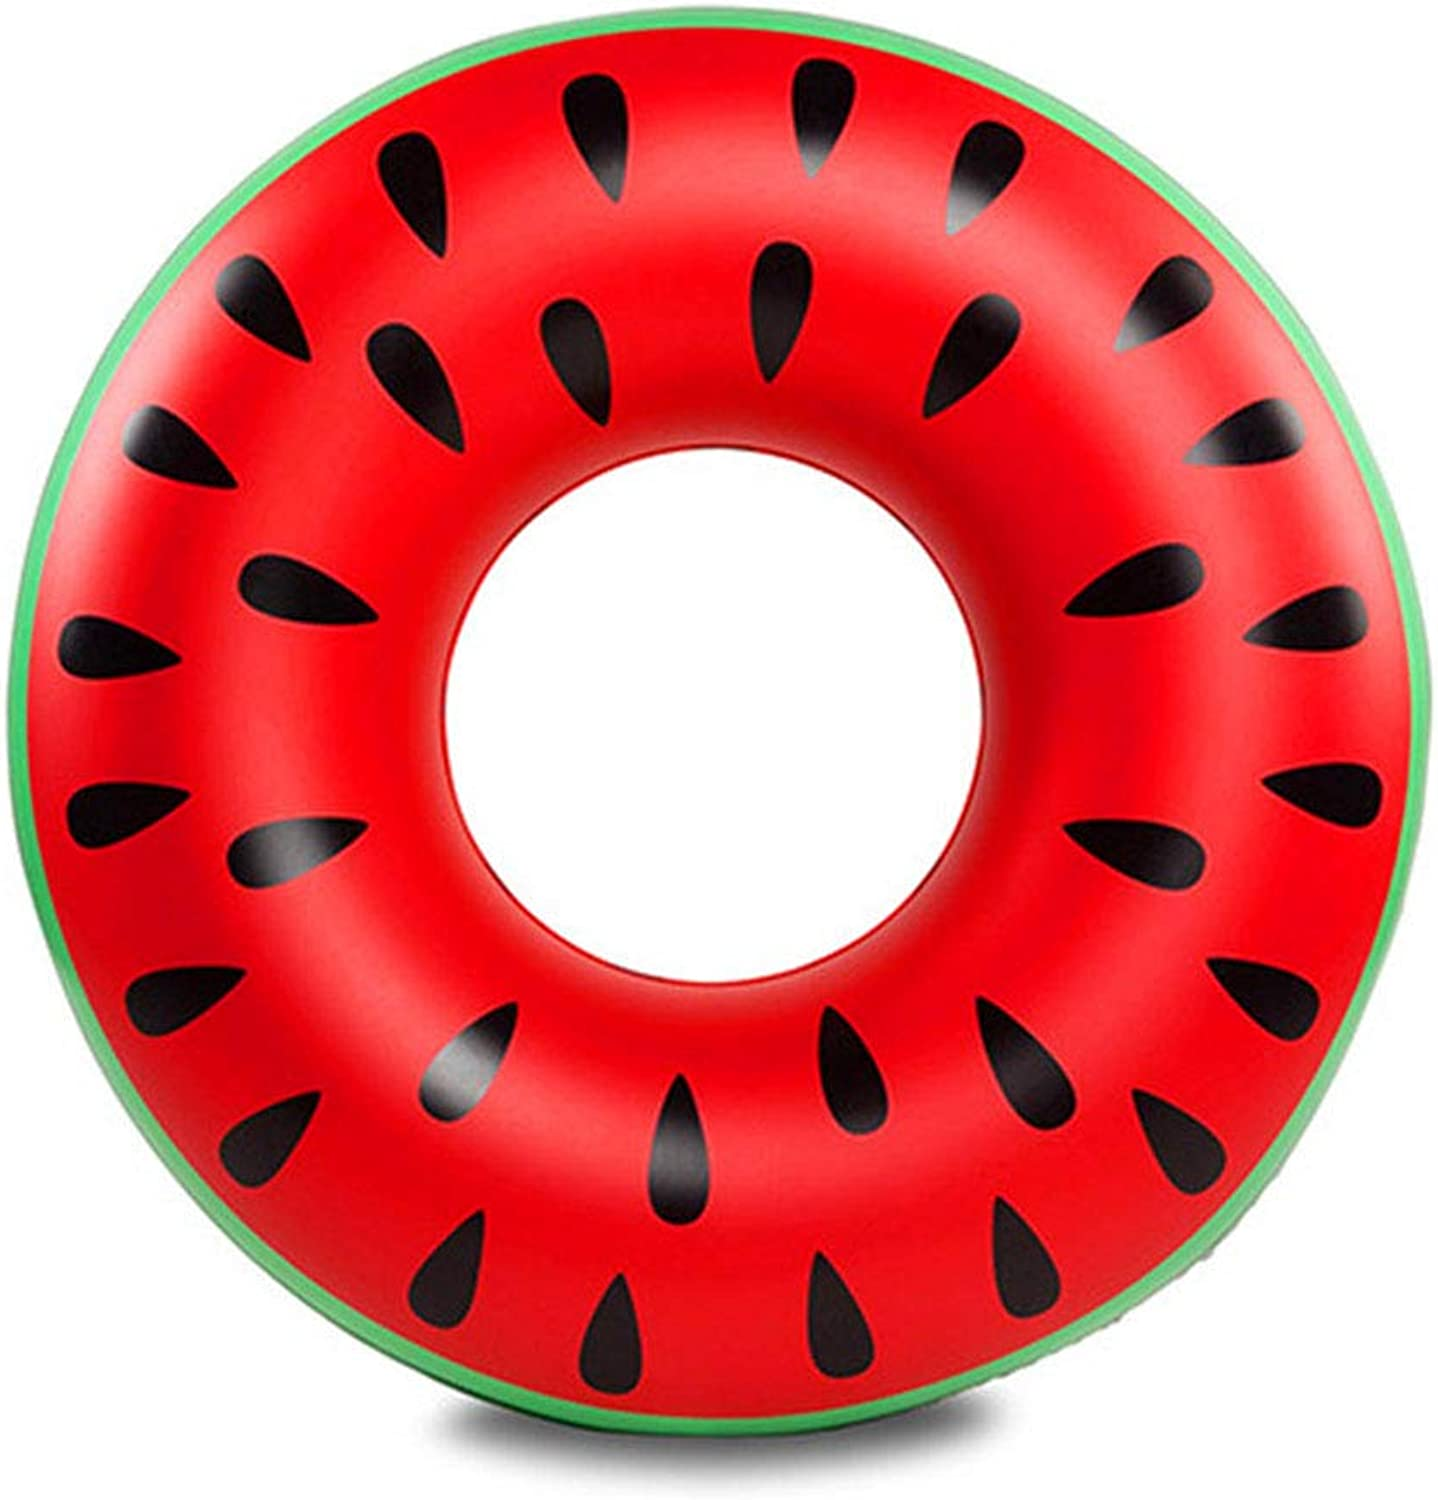 CBWZDJZDS Inflatable Swimming Ring Floating Row Super Large 120Cm Water Seat Lifebuoy Red 36Cm